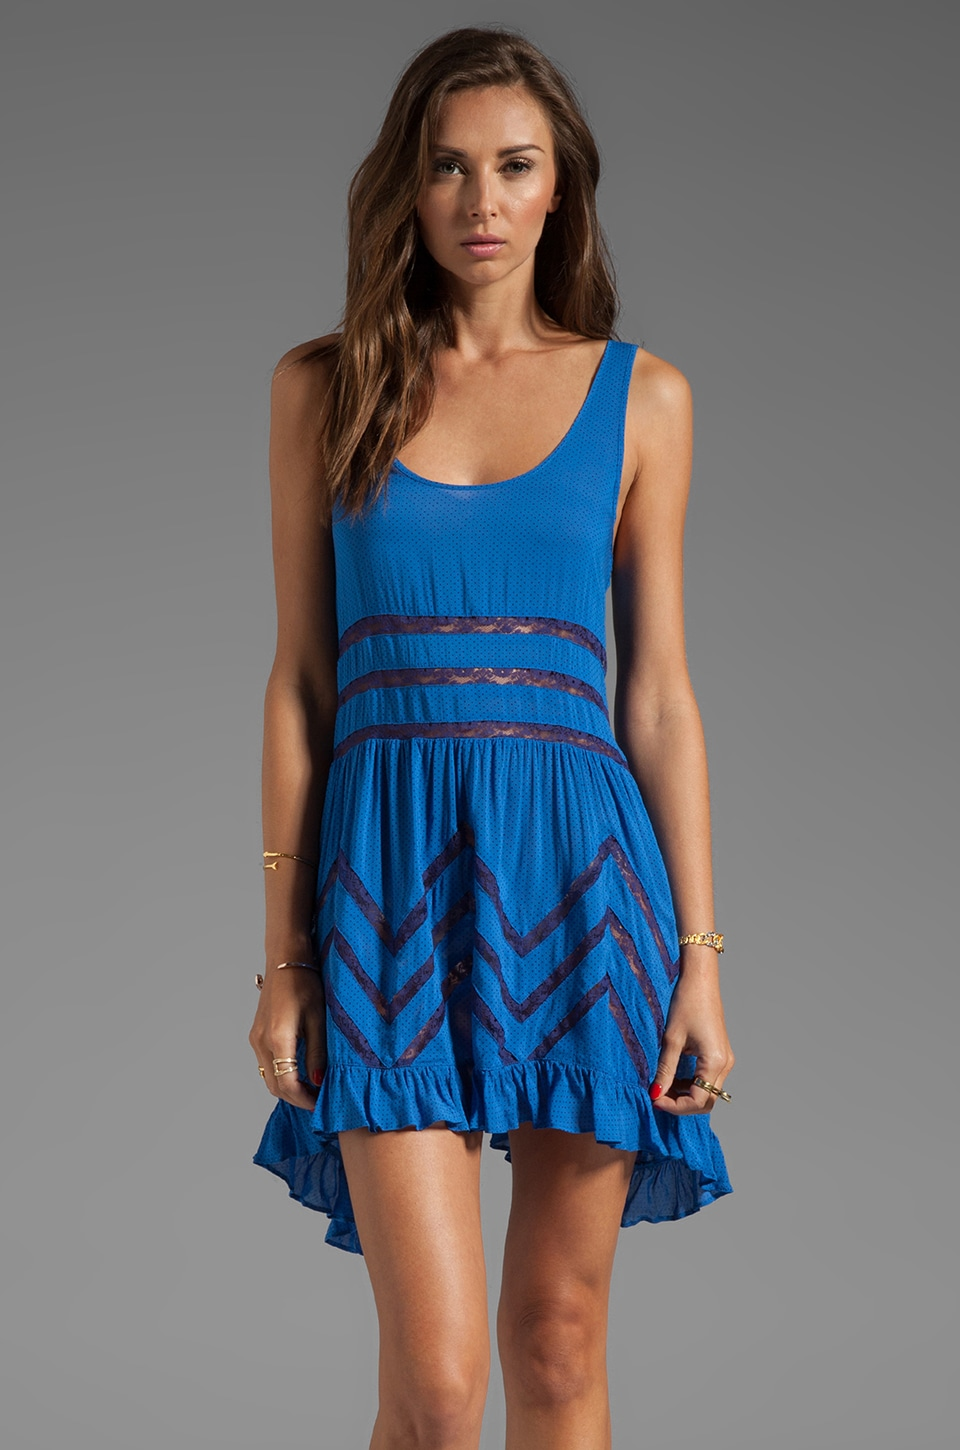 Free People Trapeze Slip Dress in Royal Combo